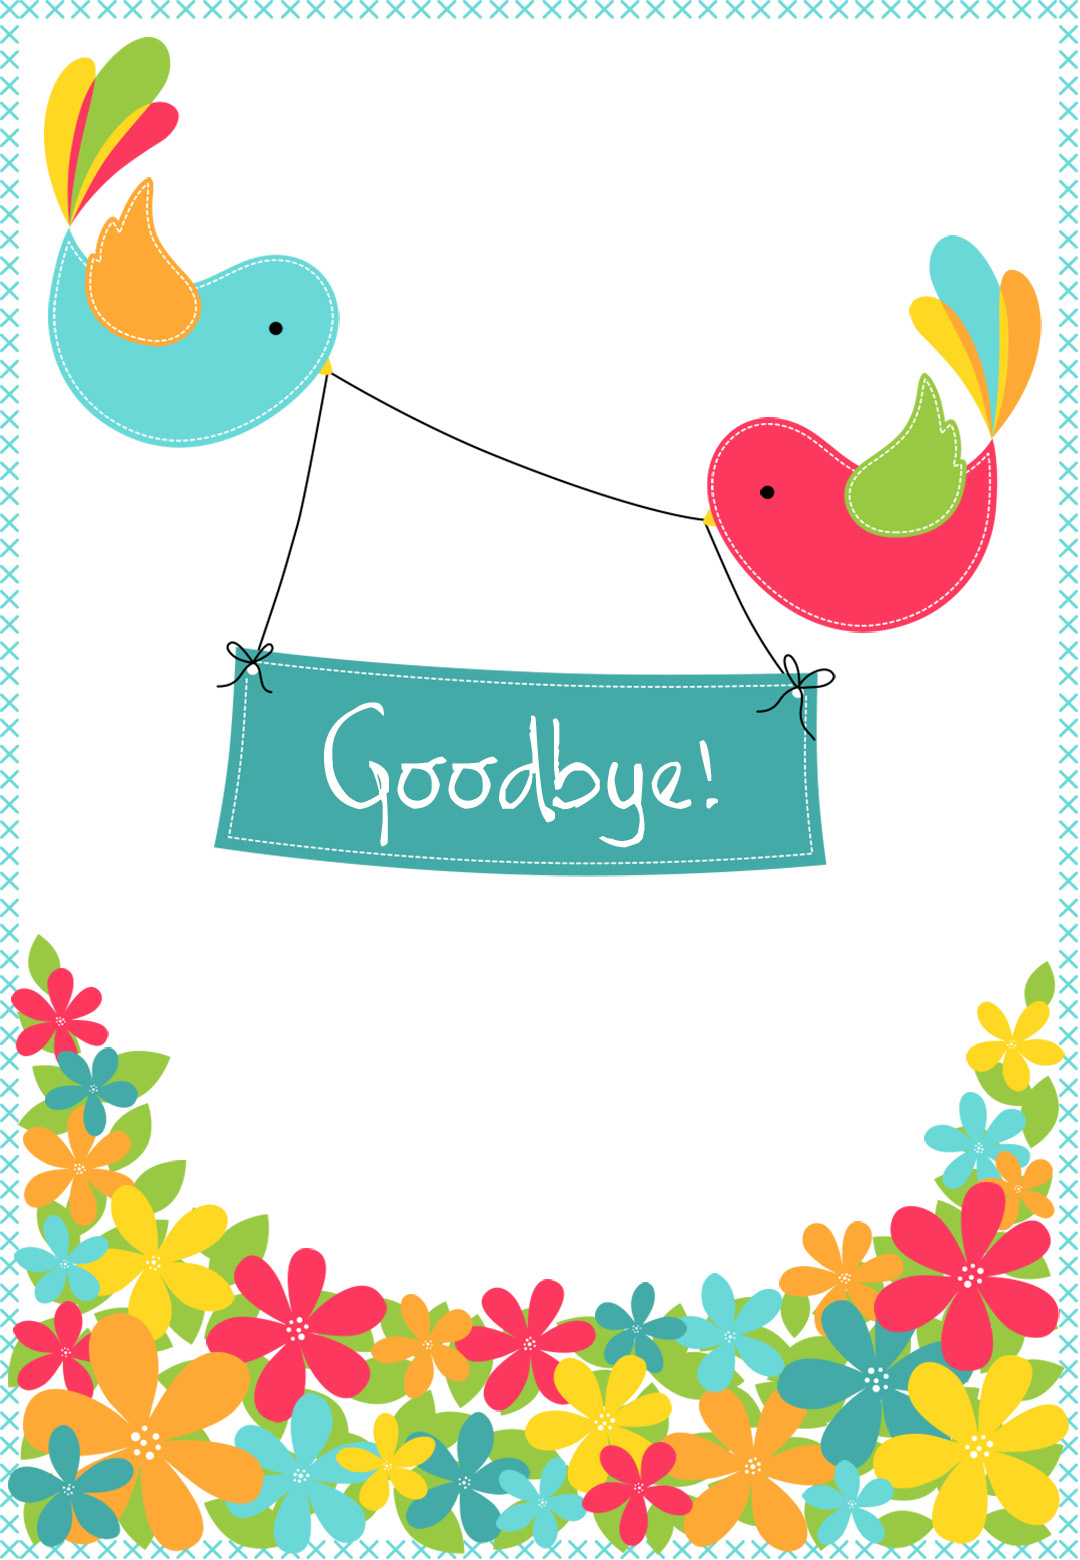 Goodbye From Your Colleagues - Free Good Luck Card   Greetings Island - Free Printable We Will Miss You Greeting Cards